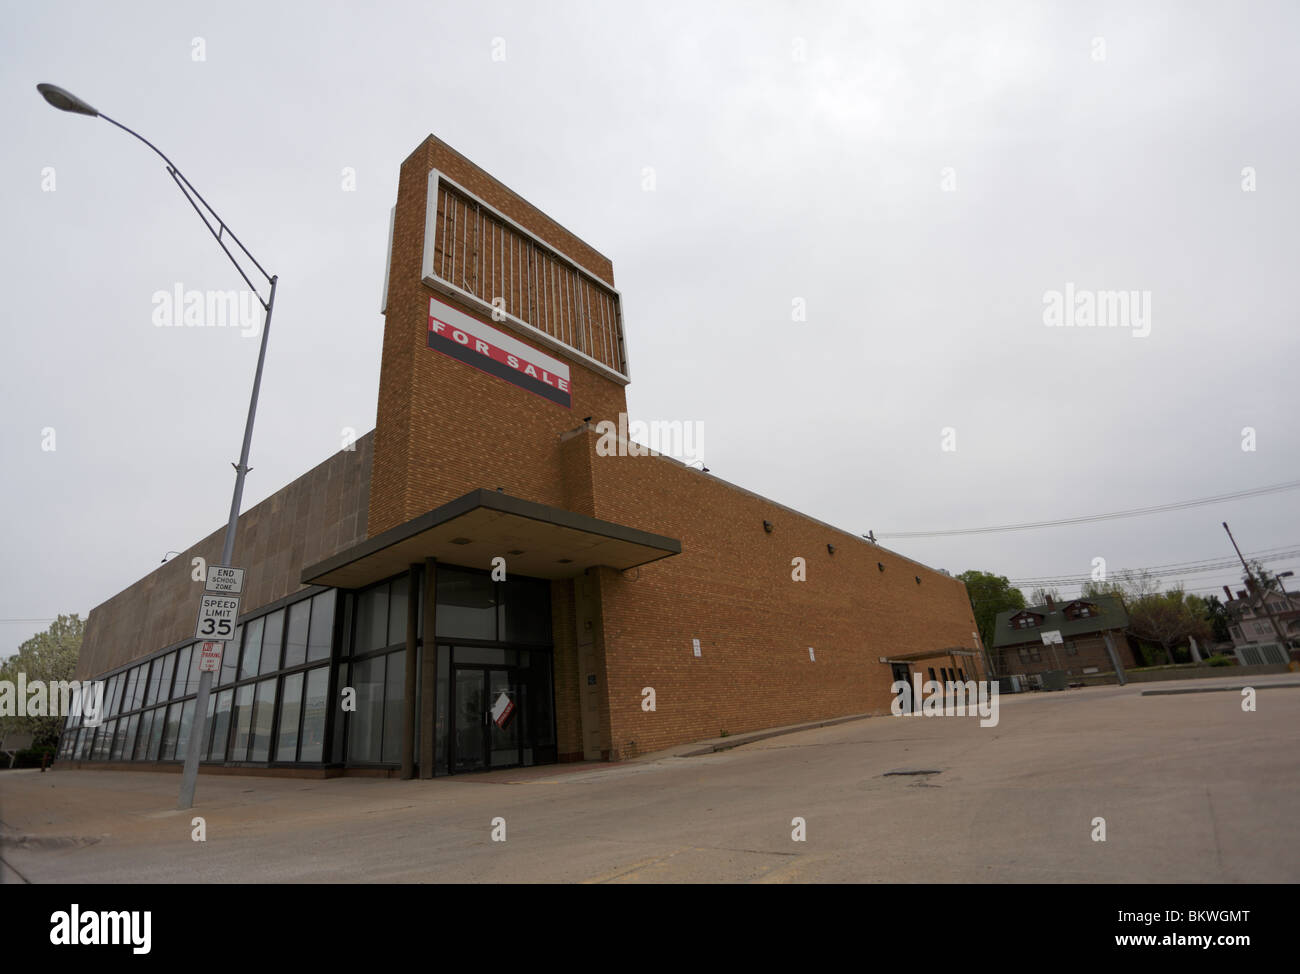 Former supermarket building, for sale. - Stock Image